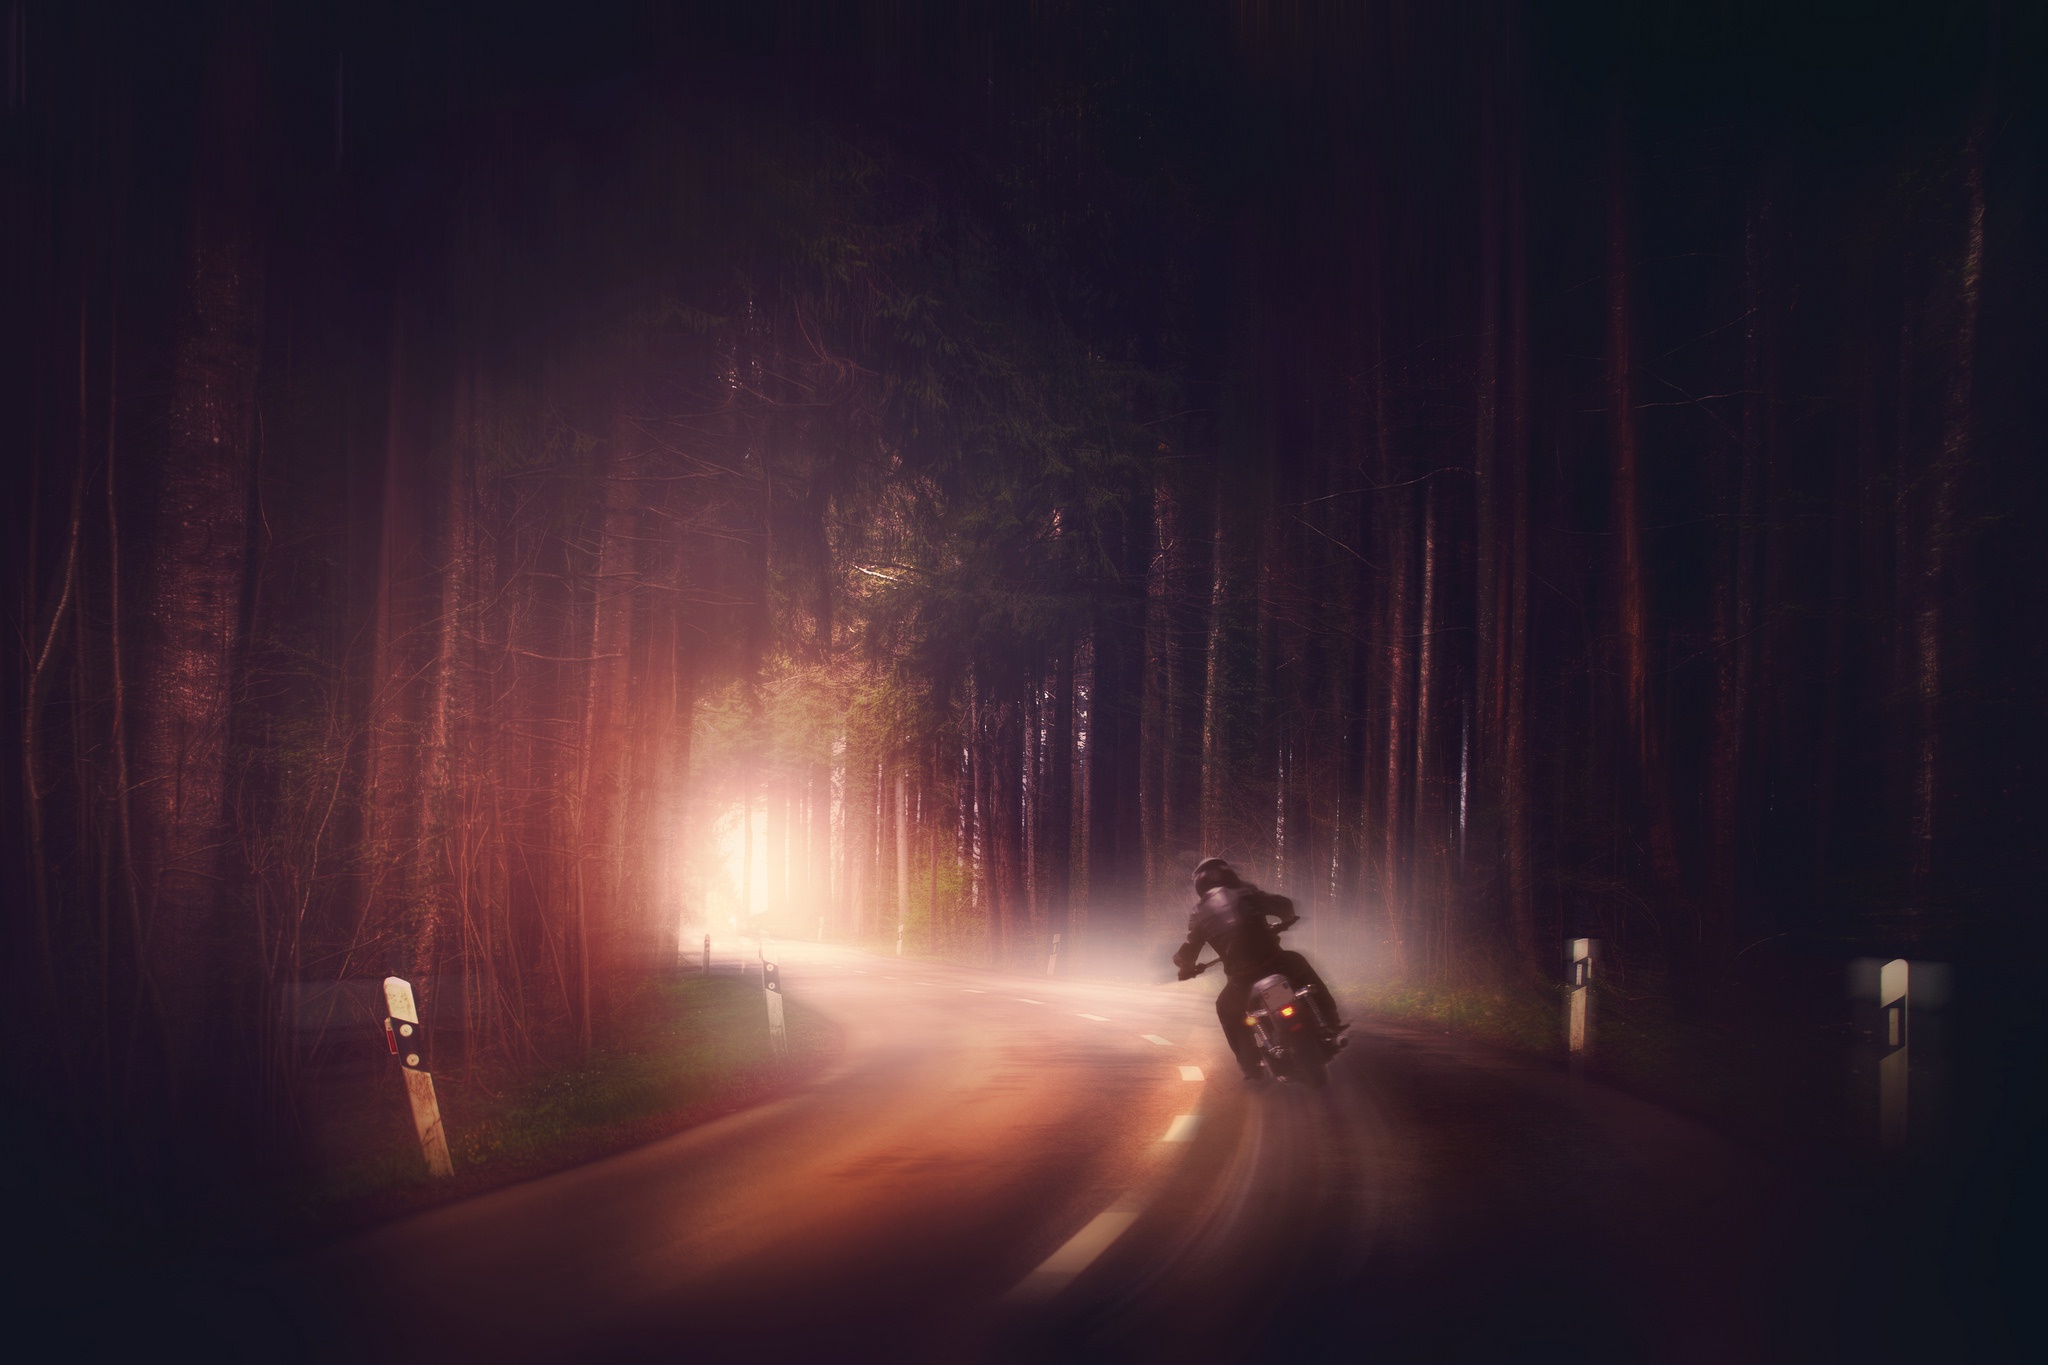 Biker In Woods Dark Road Digital Art